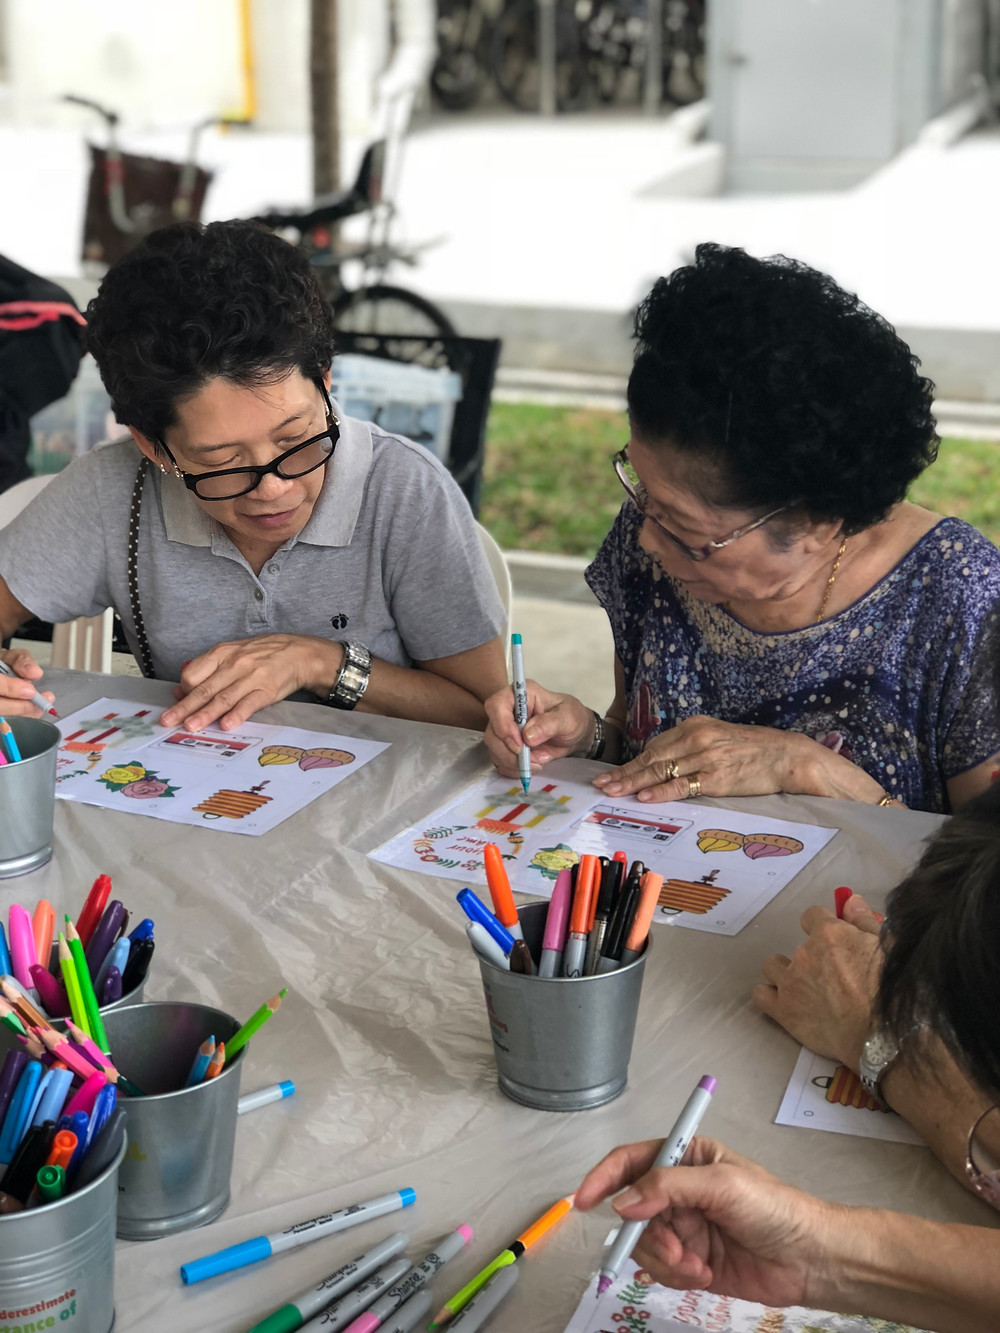 Crafting with the seniors at community events